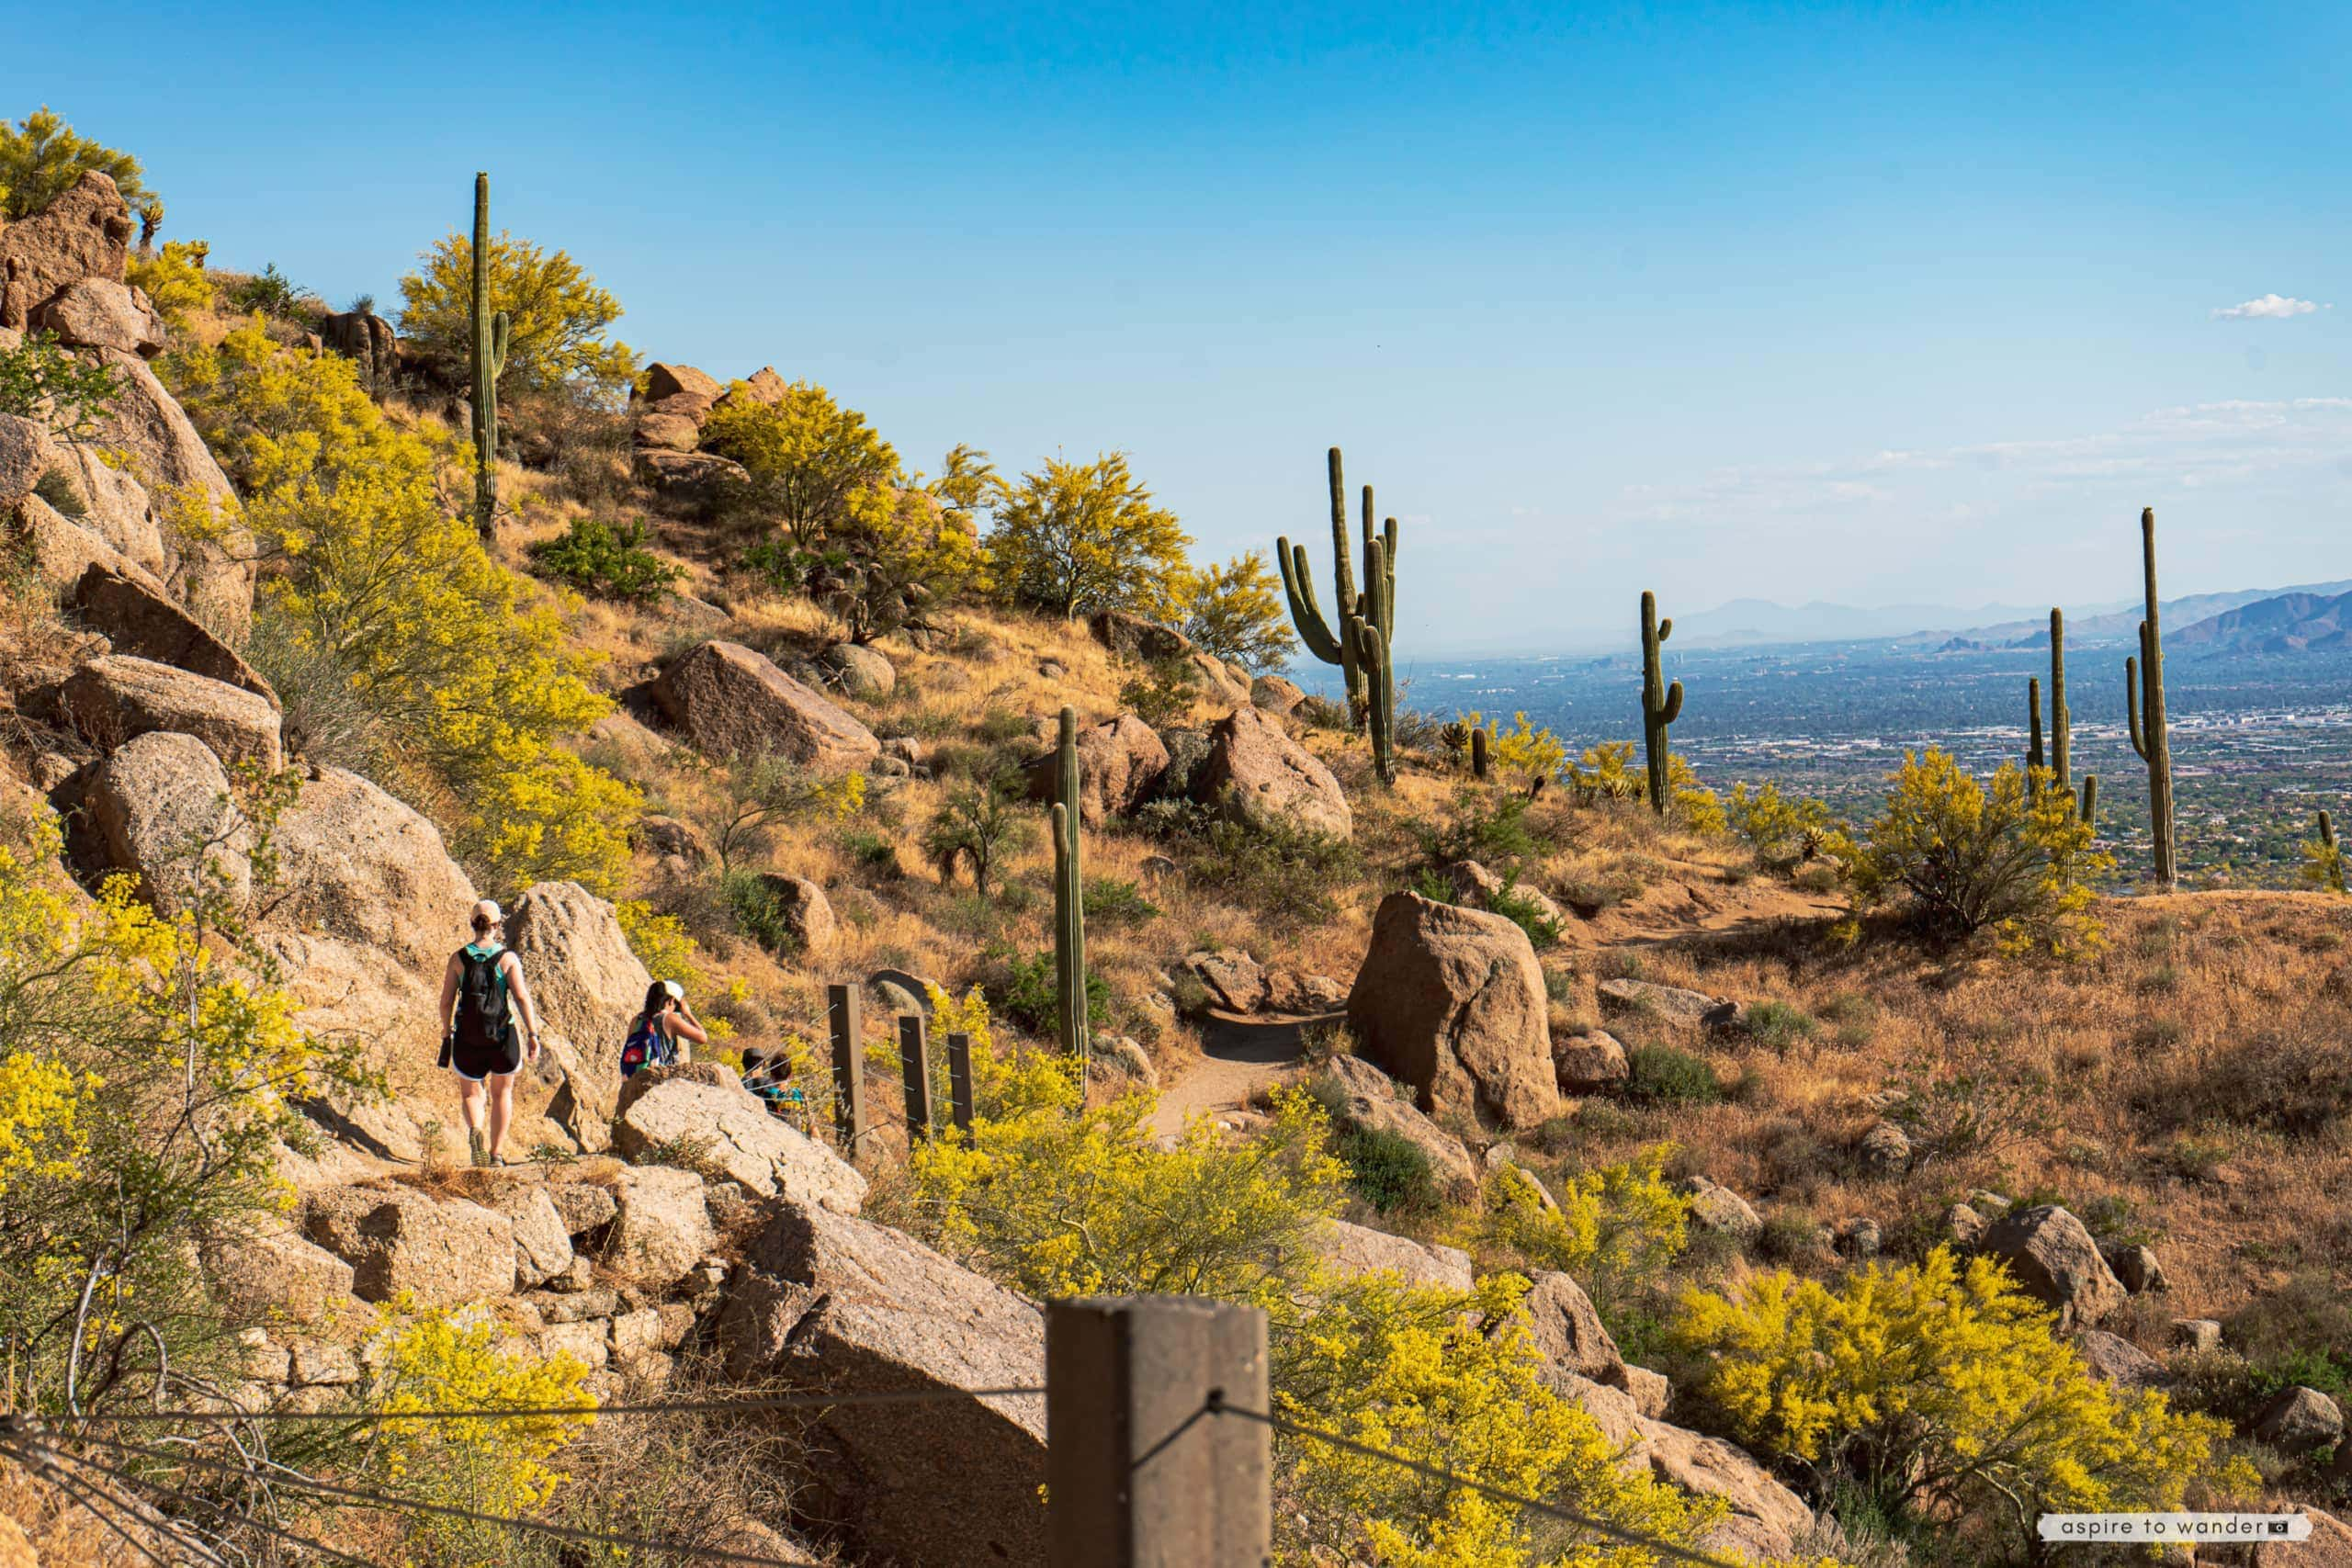 It has enough elevation to get the heart rate up and offer great views but is short enough to. Pinnacle Peak Park An Easy Hike And Pretty Views In Scottsdale Arizona